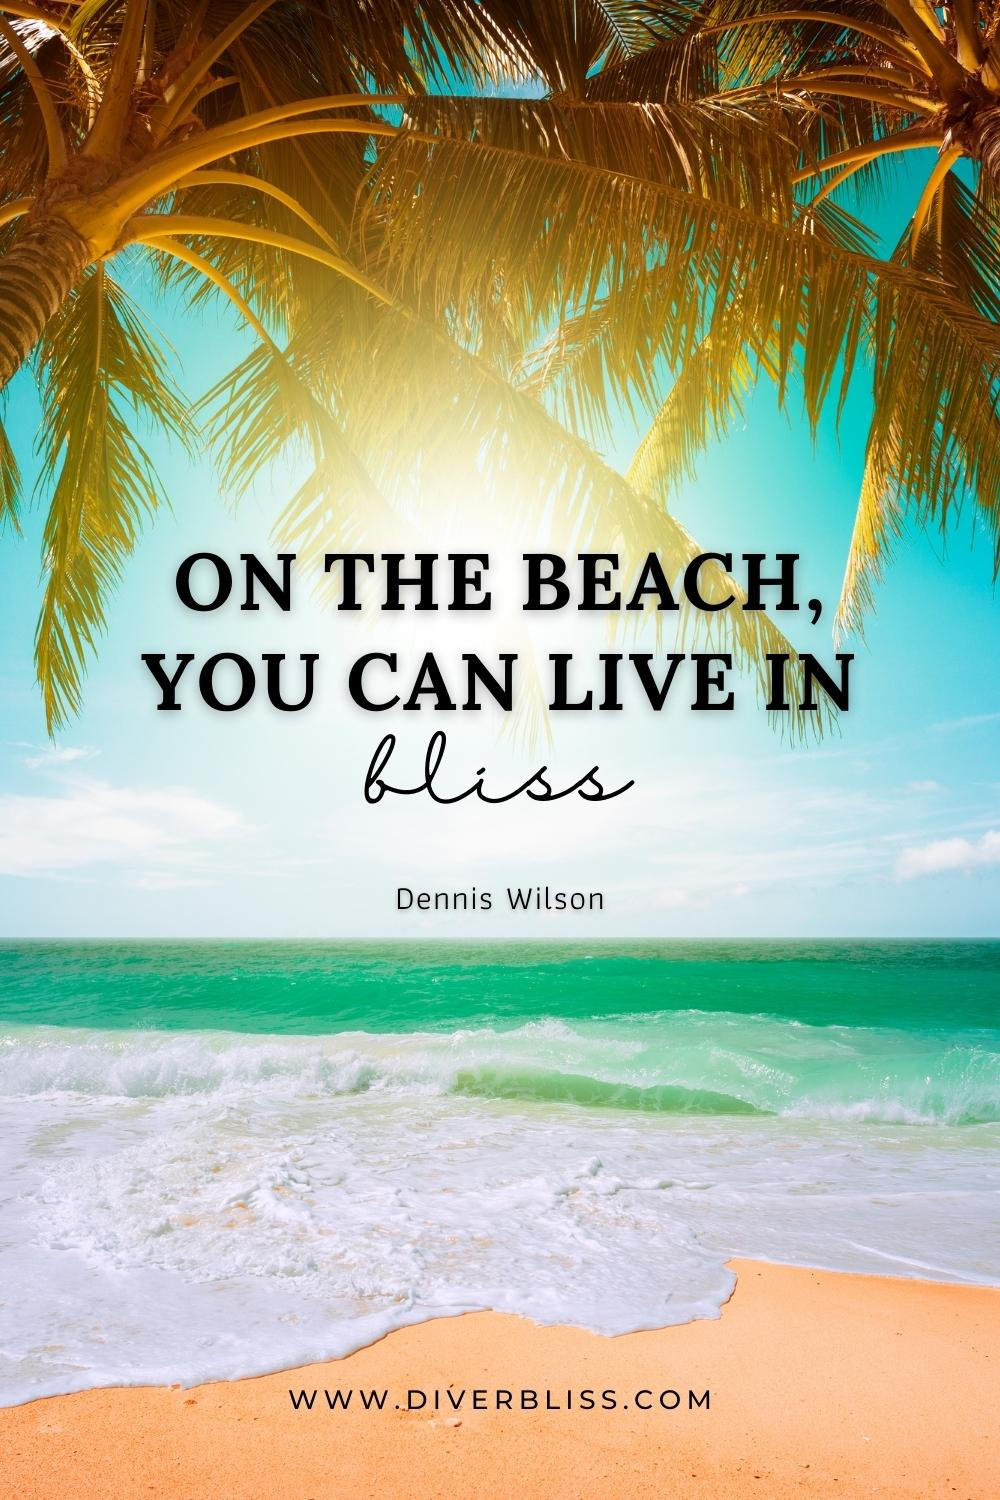 """""""On the beach, you can live in bliss."""" —Dennis Wilson"""